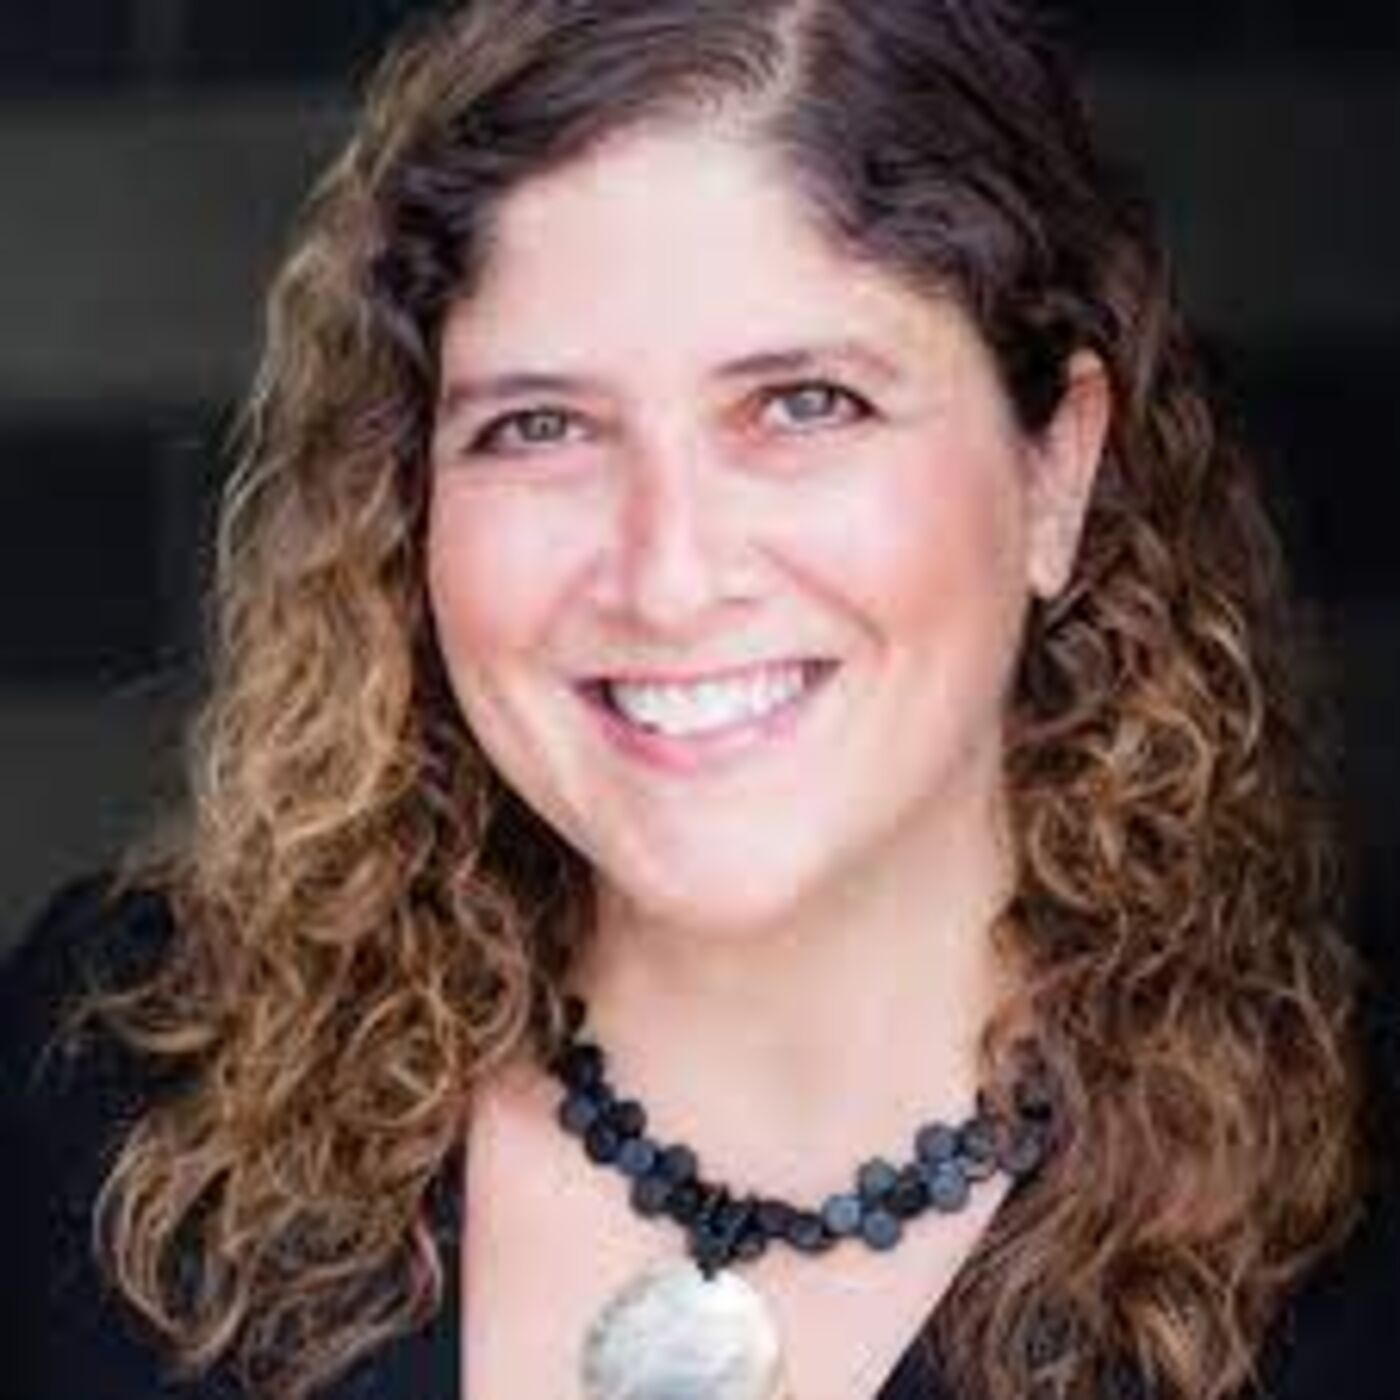 151st Episode with Julie Bruns, Founder of 2 Possibility and Beyond